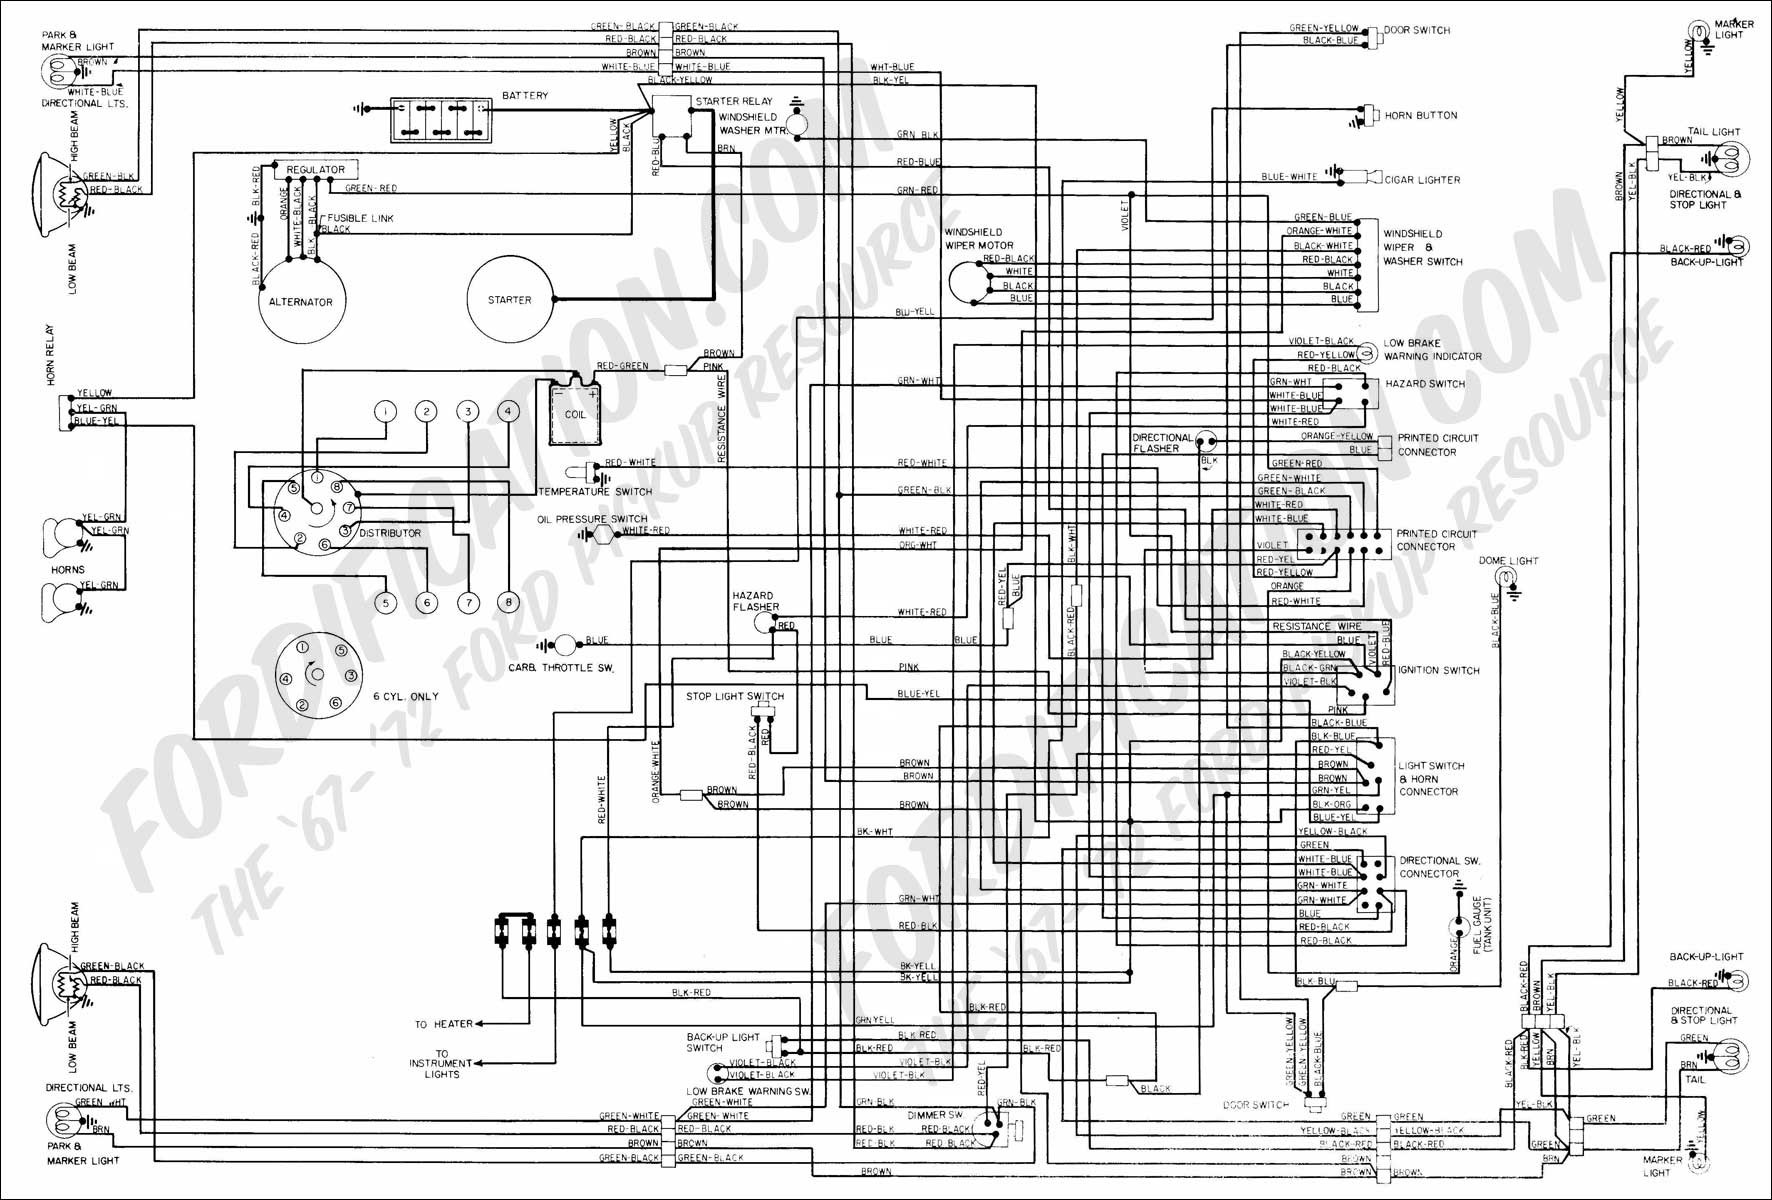 1998 Ford Expedition Engine Diagram 2004 Ranger Wiring Truck Brake Diagrams F700 Http Wwwfordtrucks Forums Of